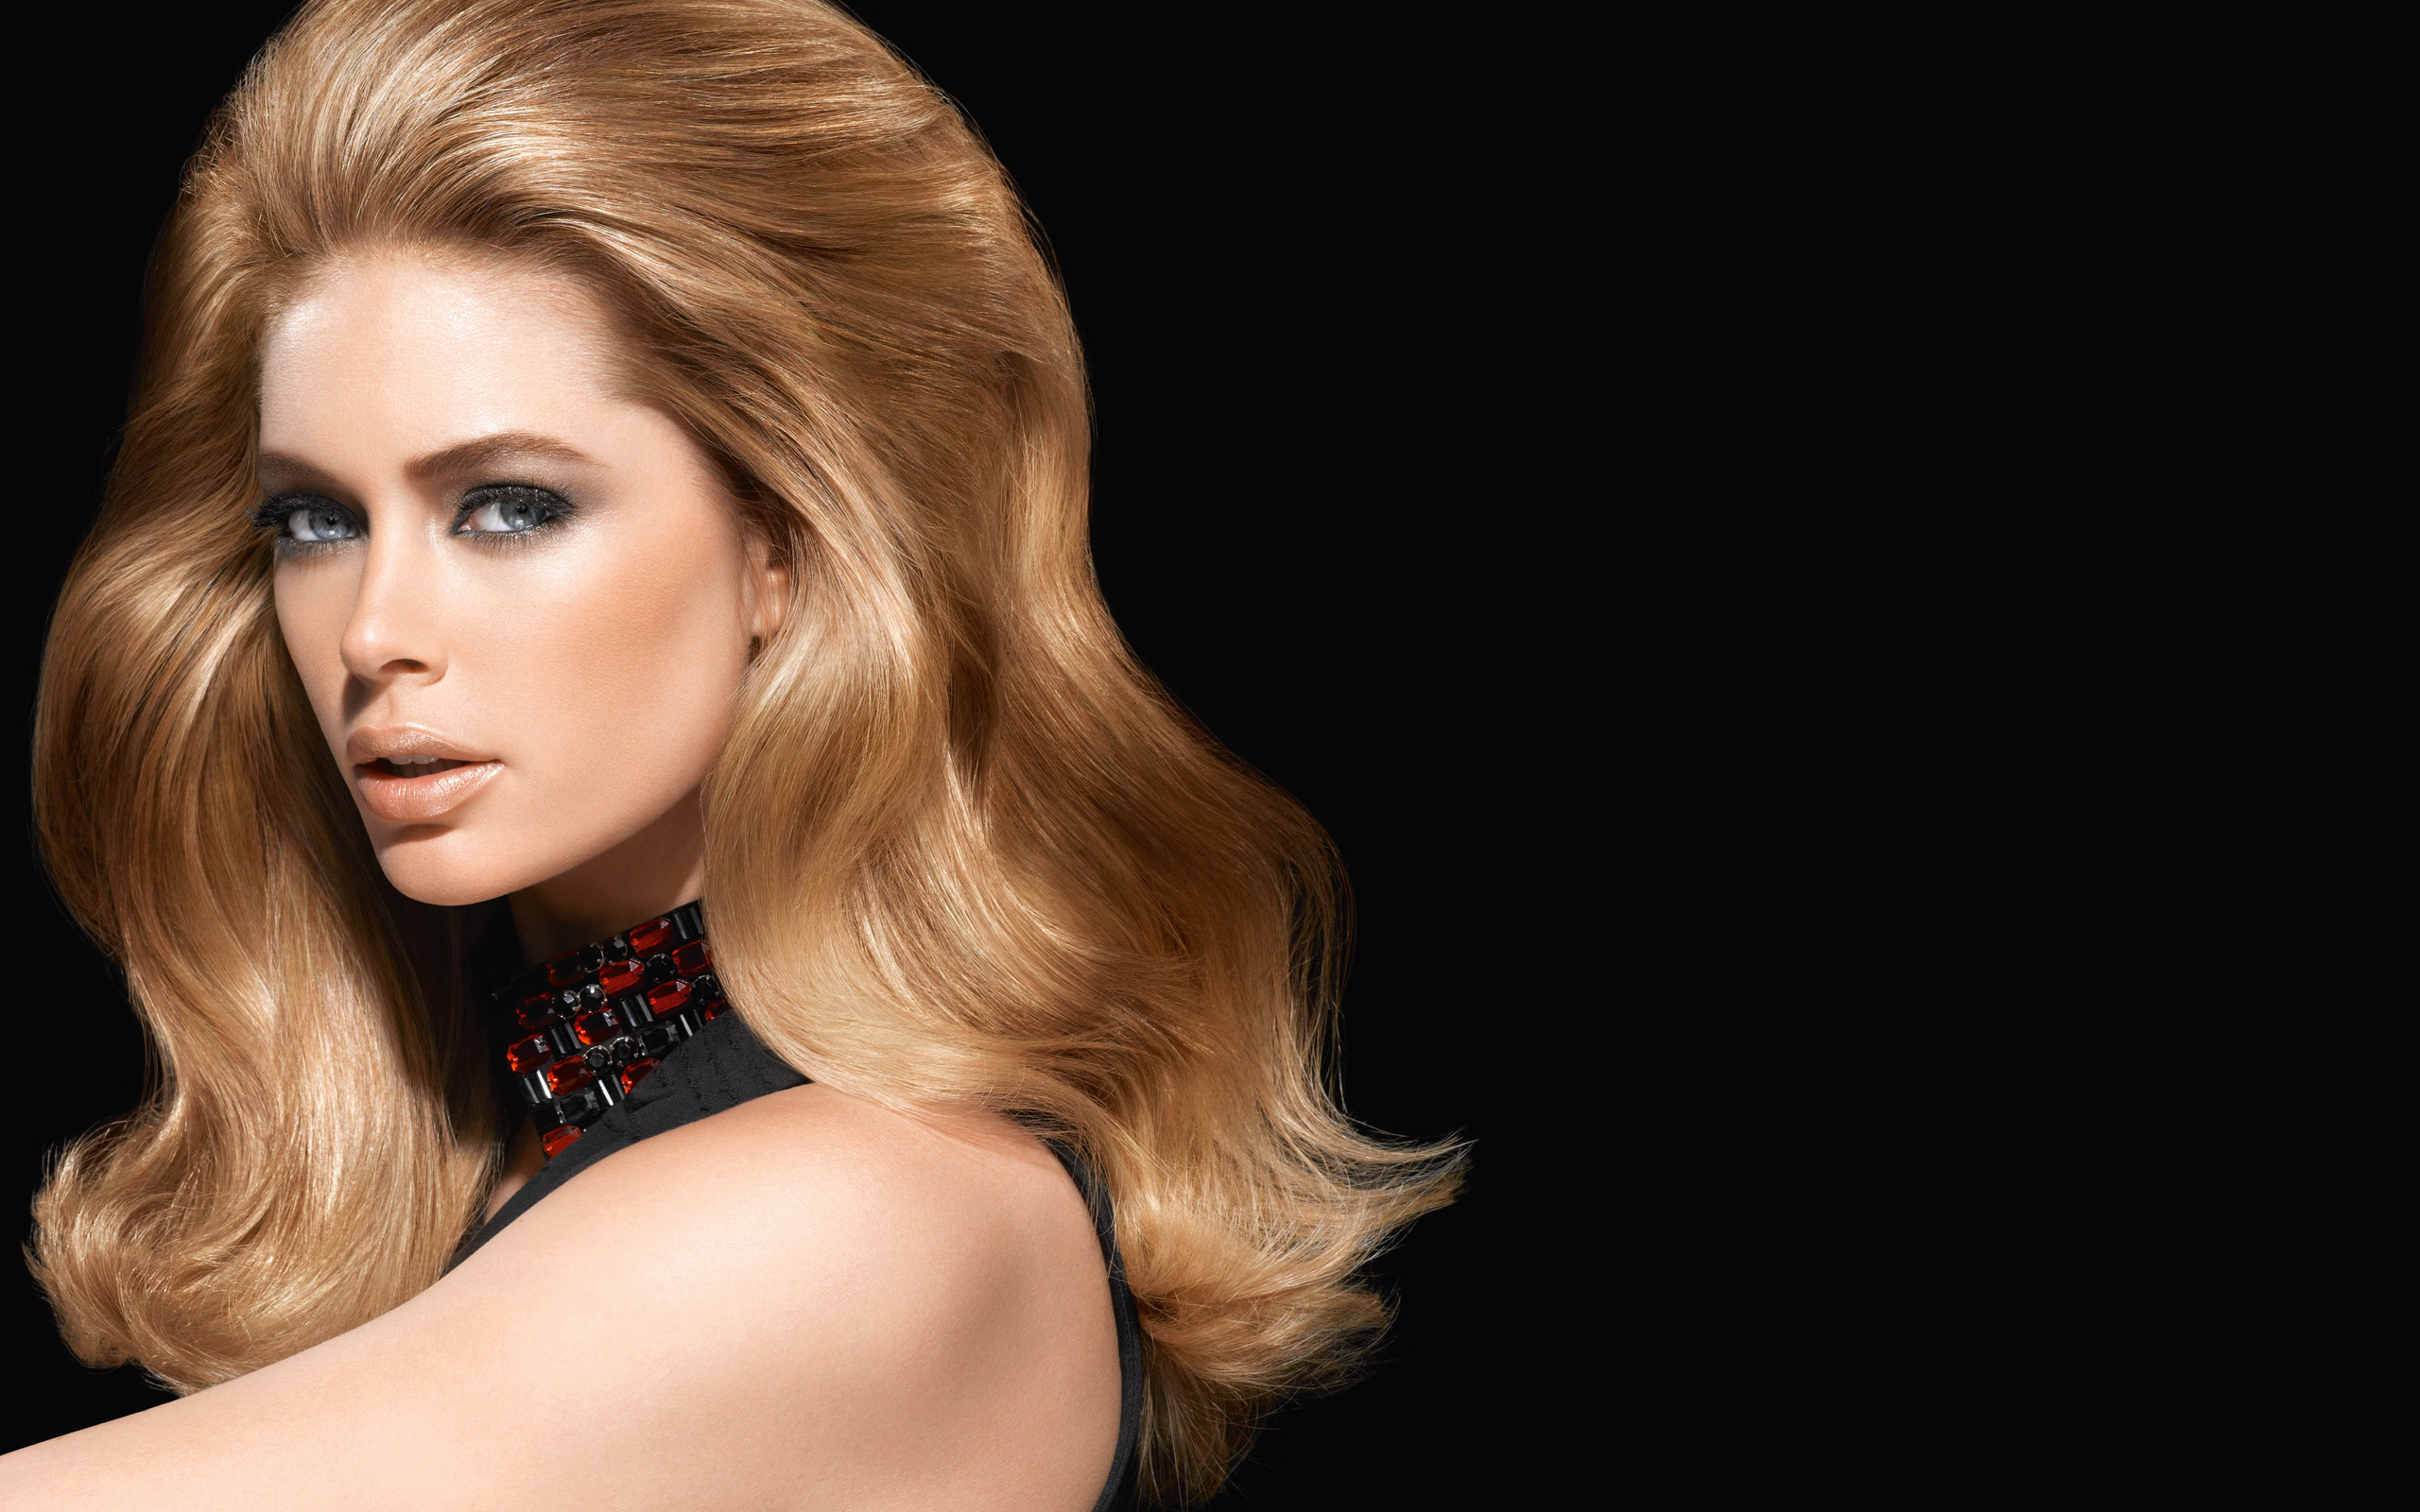 doutzen kroes wallpapers high resolution and quality download